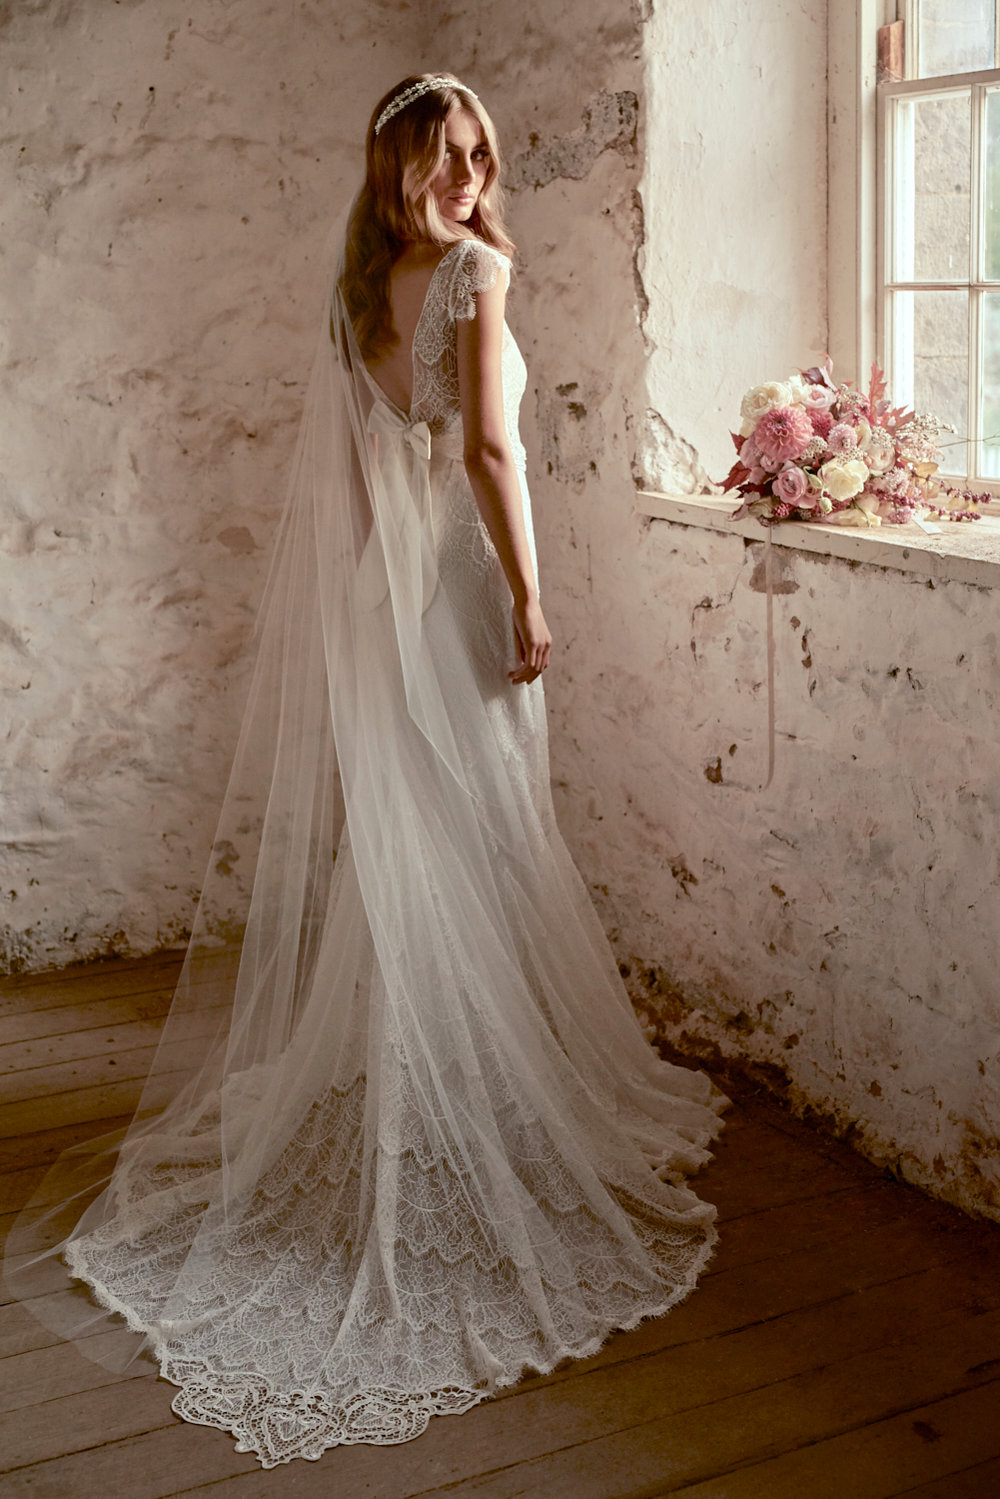 Bella-Dress_Trumpet_Eternal-Heart-Collection-5 copy.jpg